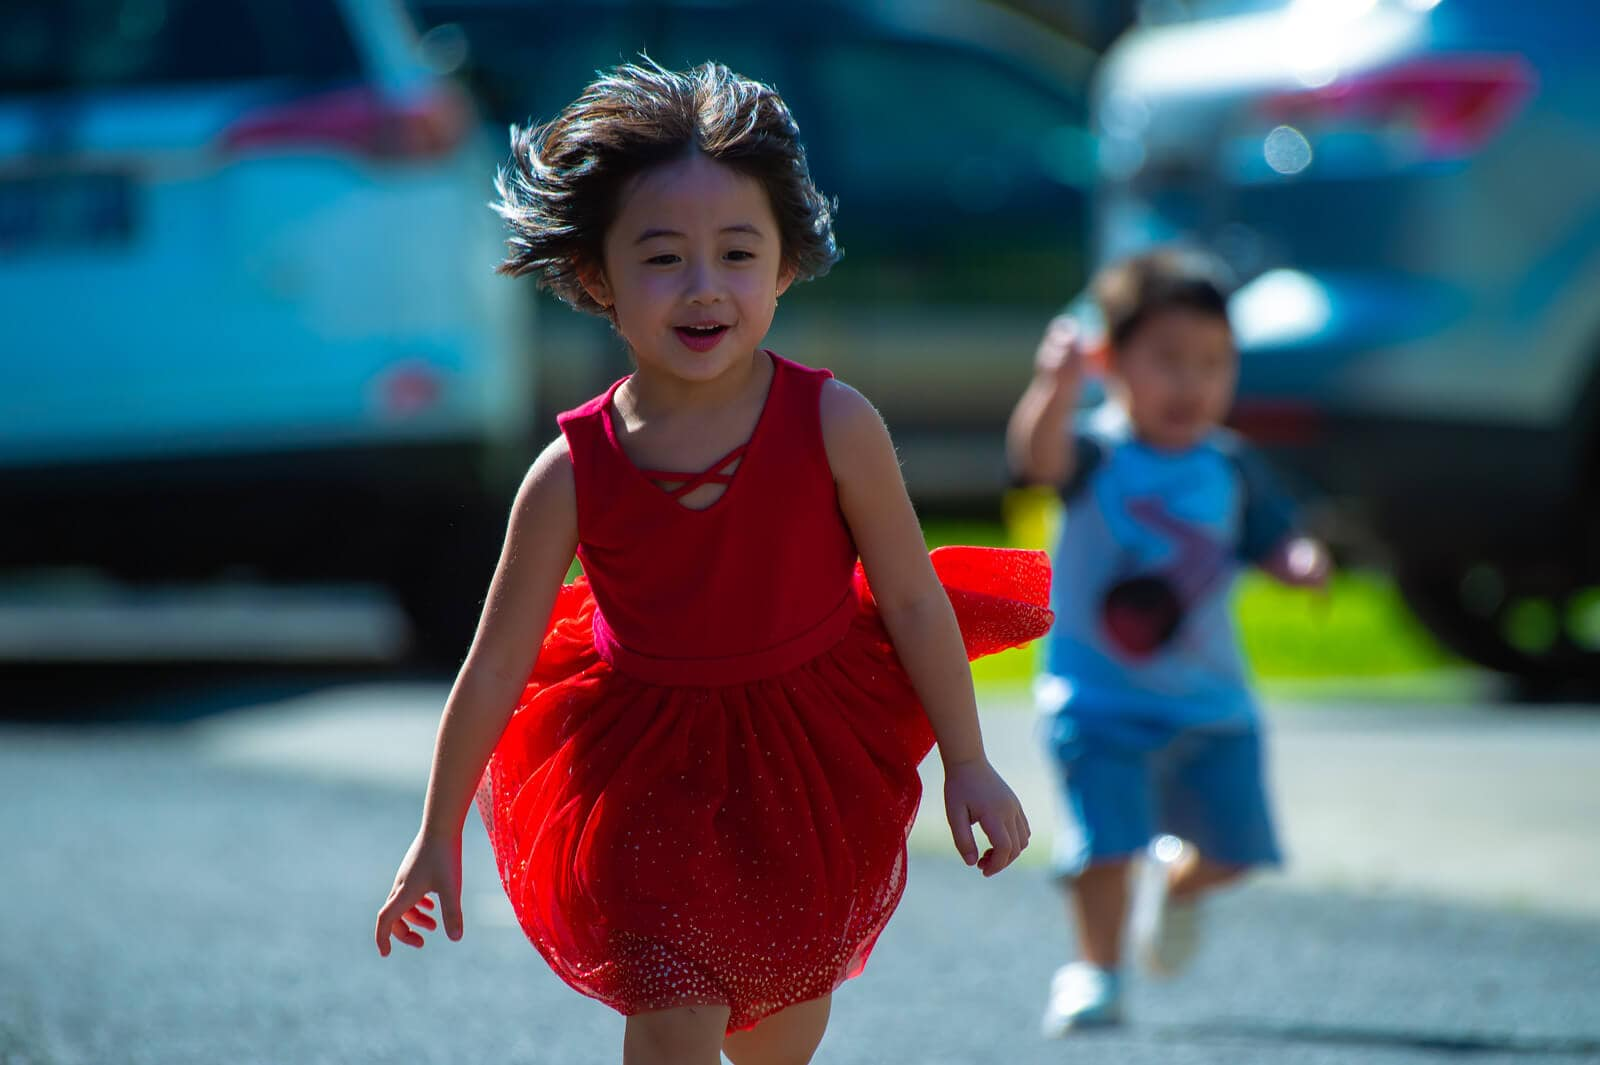 Canva - Photo of Girl in Red Dress Running on Street (1) (1)